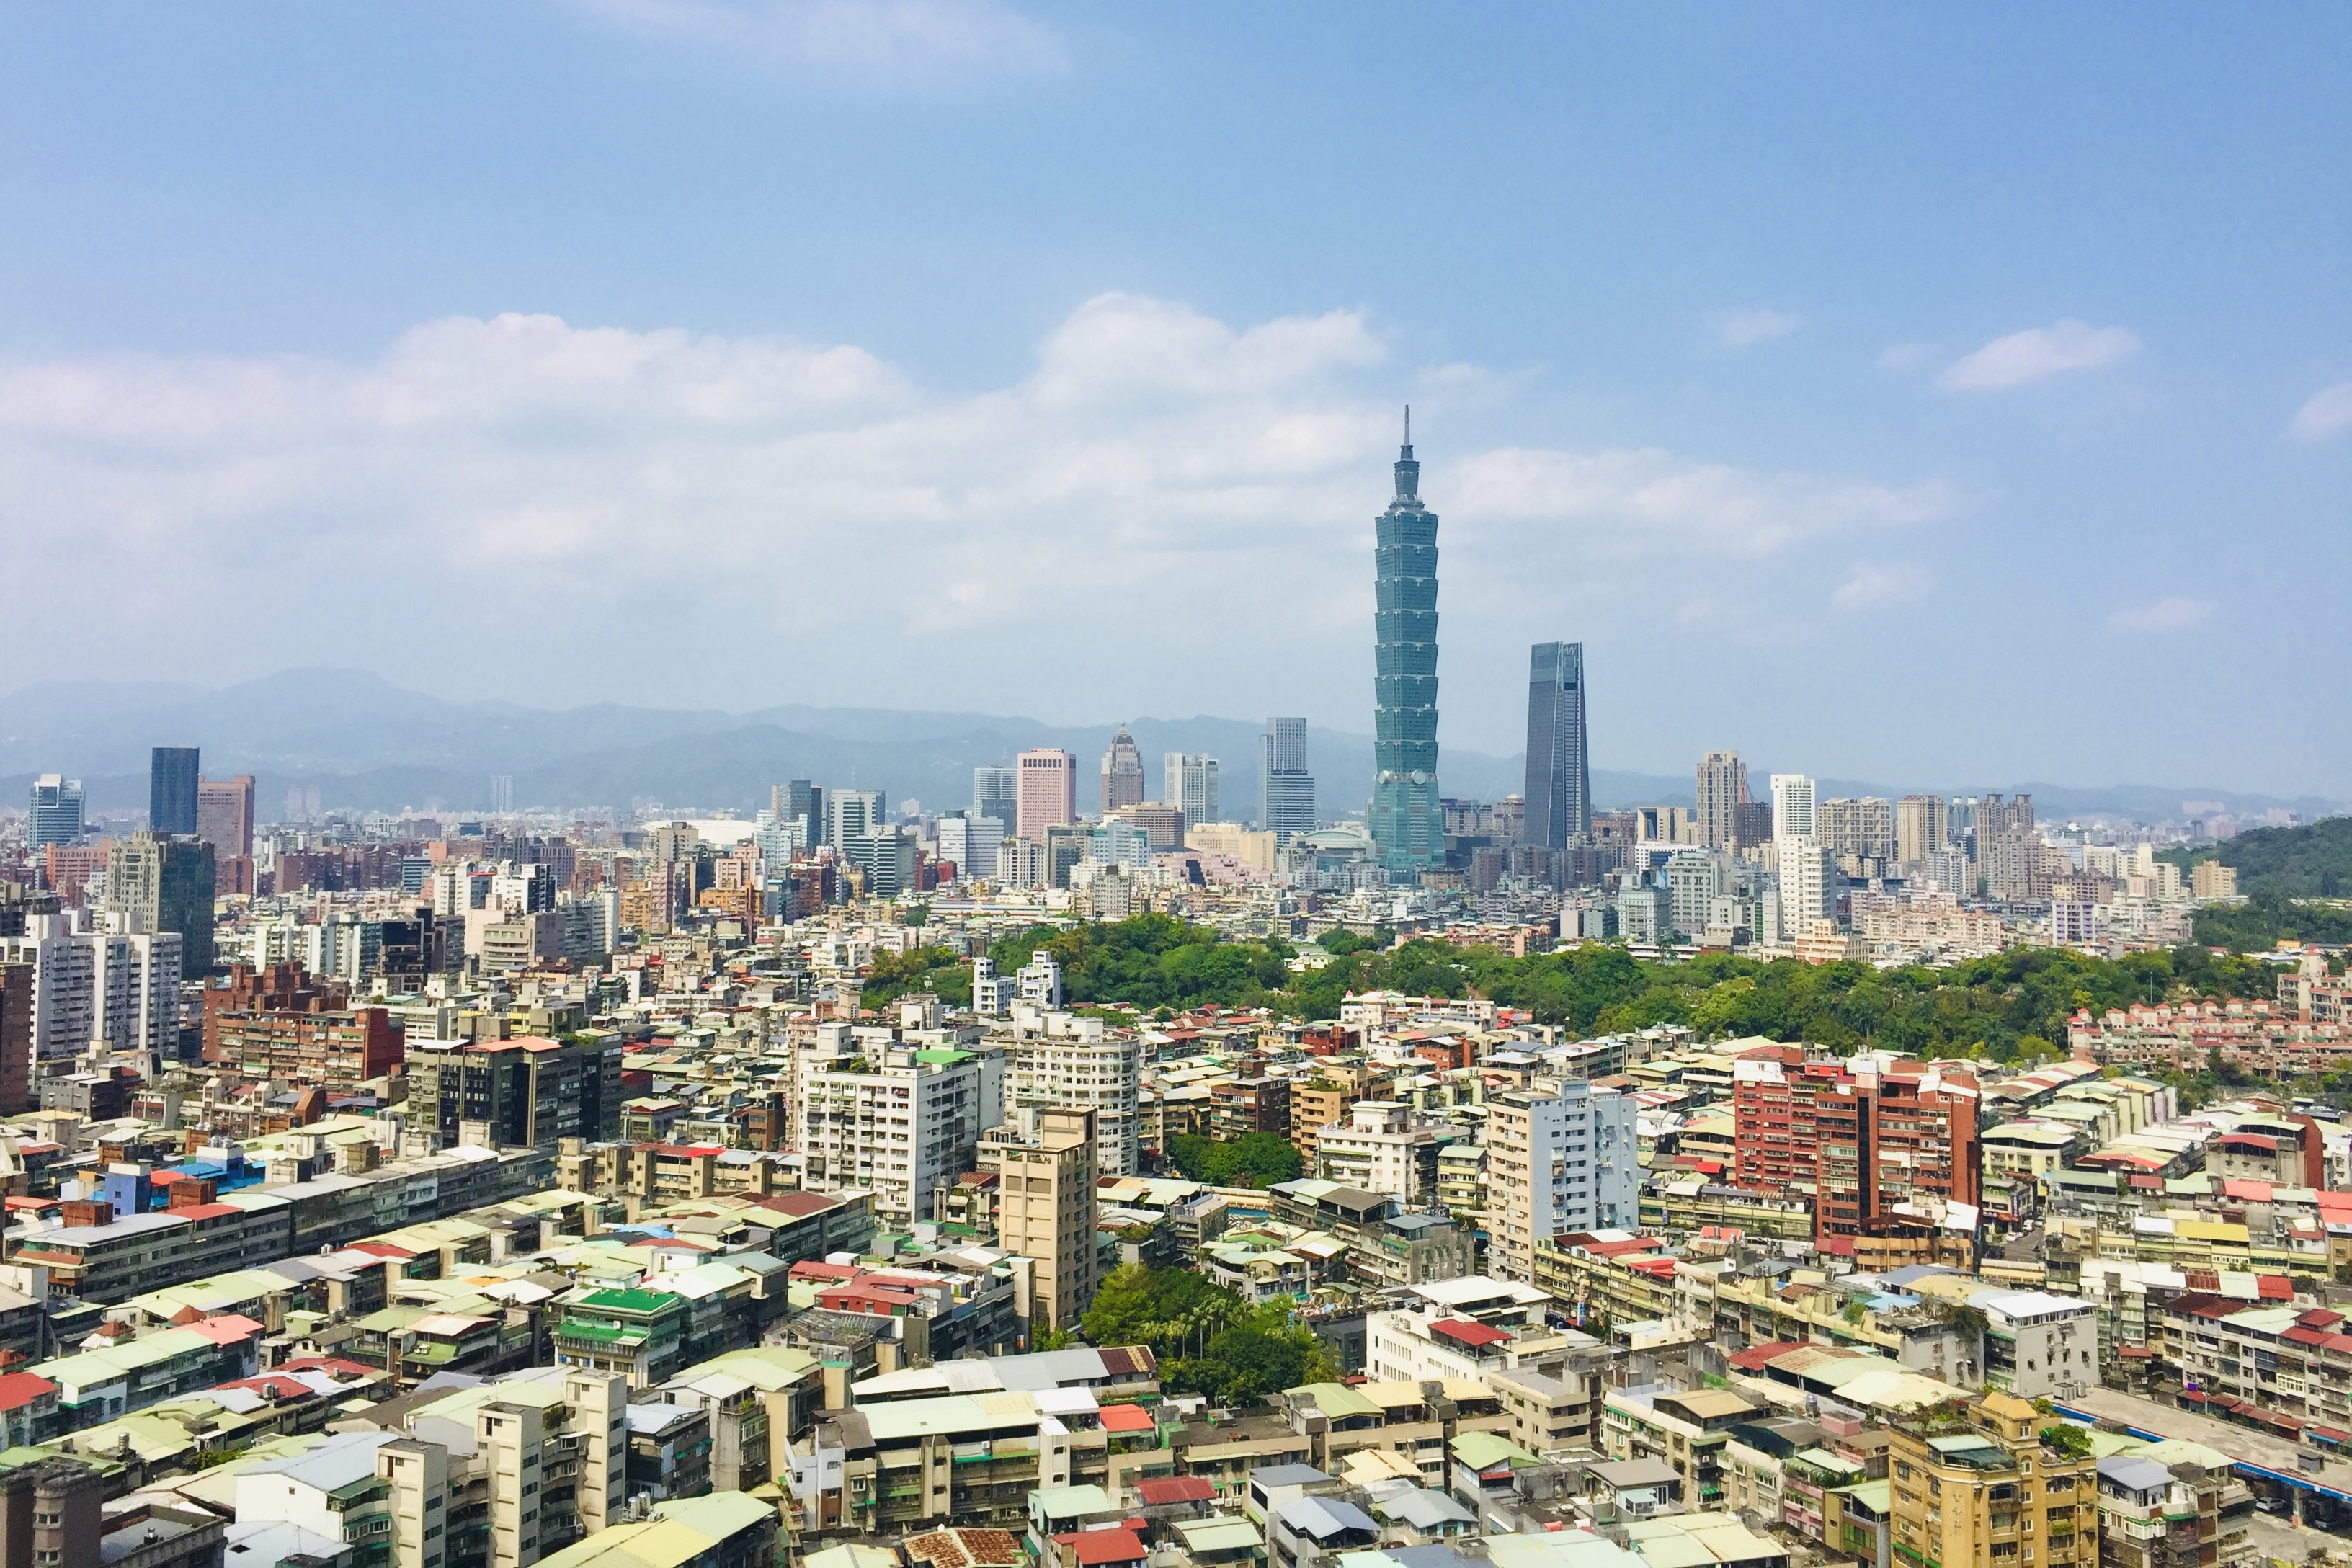 We'll help you search Taipei to find the best place to live